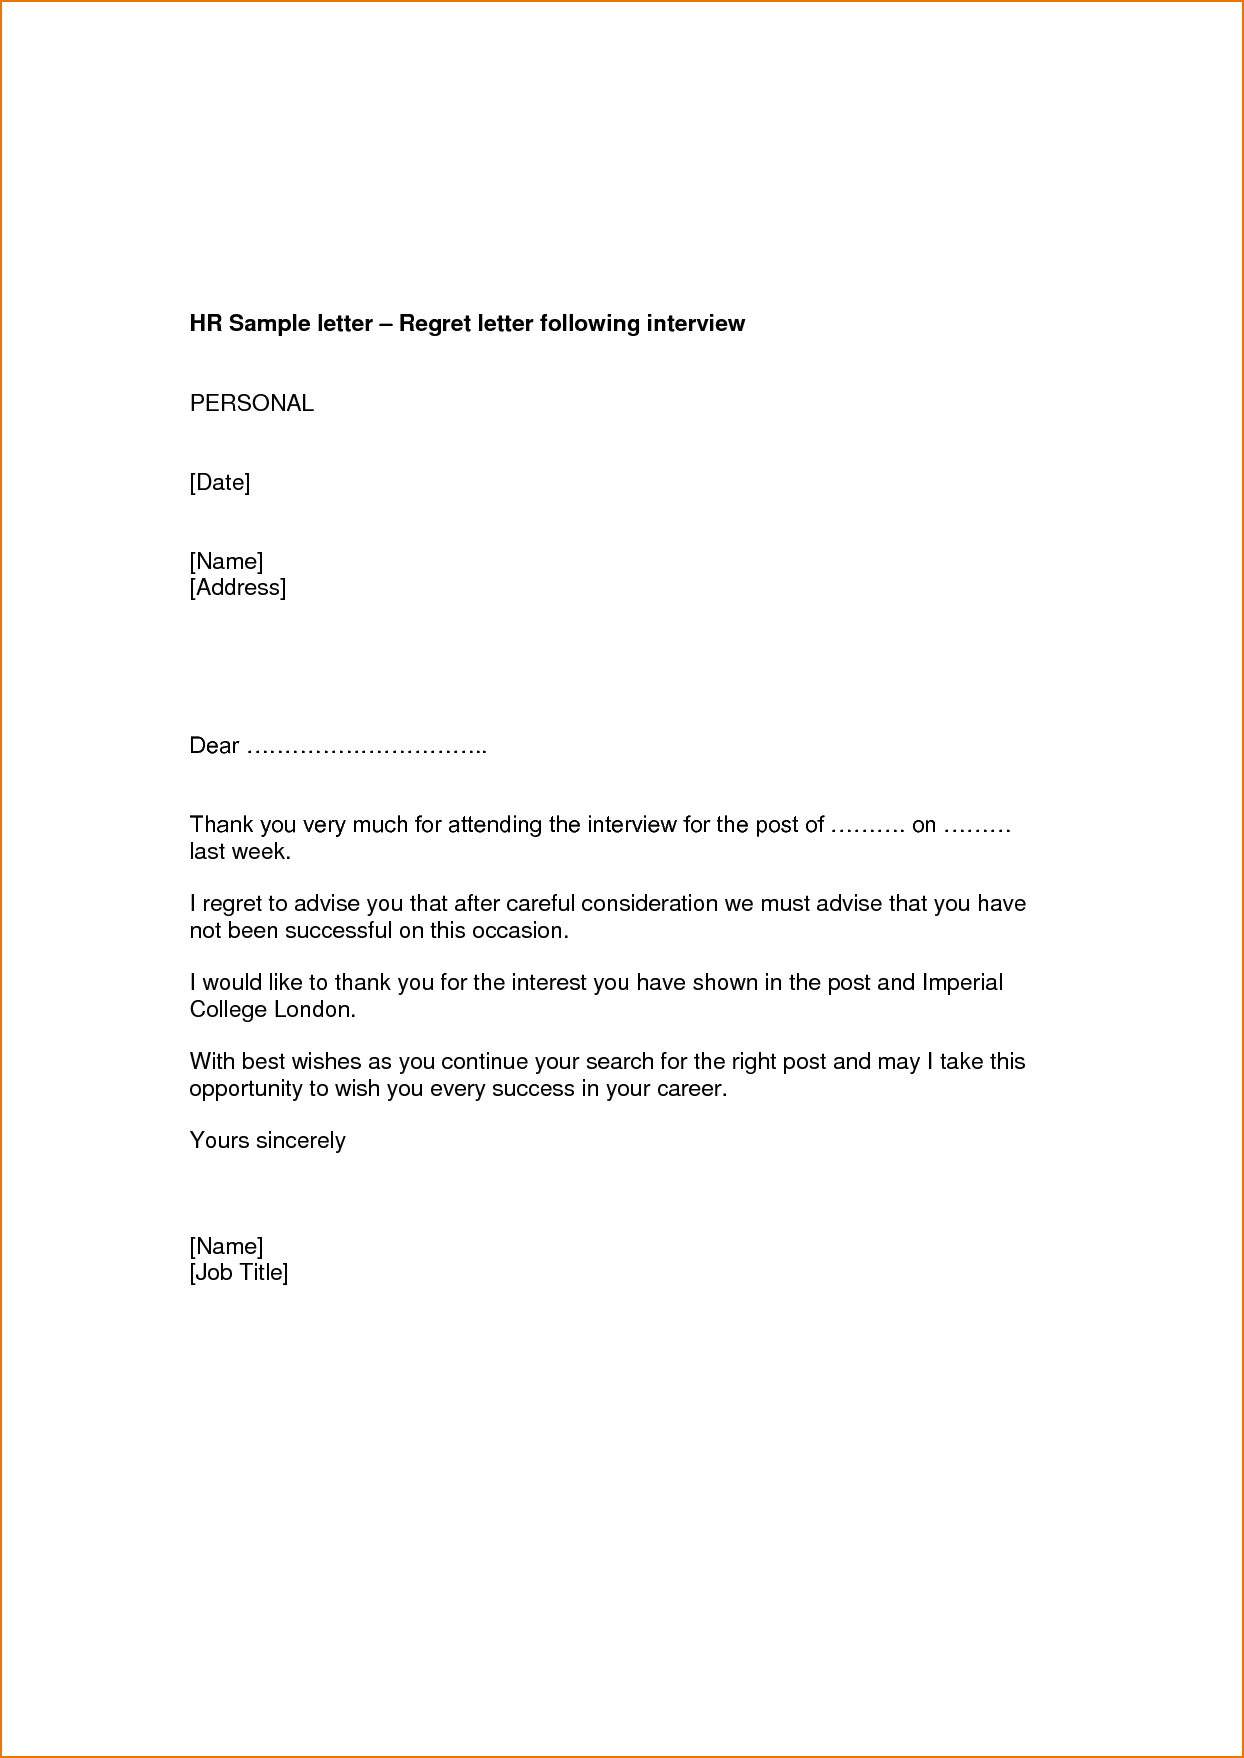 Employment Application Rejection Letters Searching For Proposal